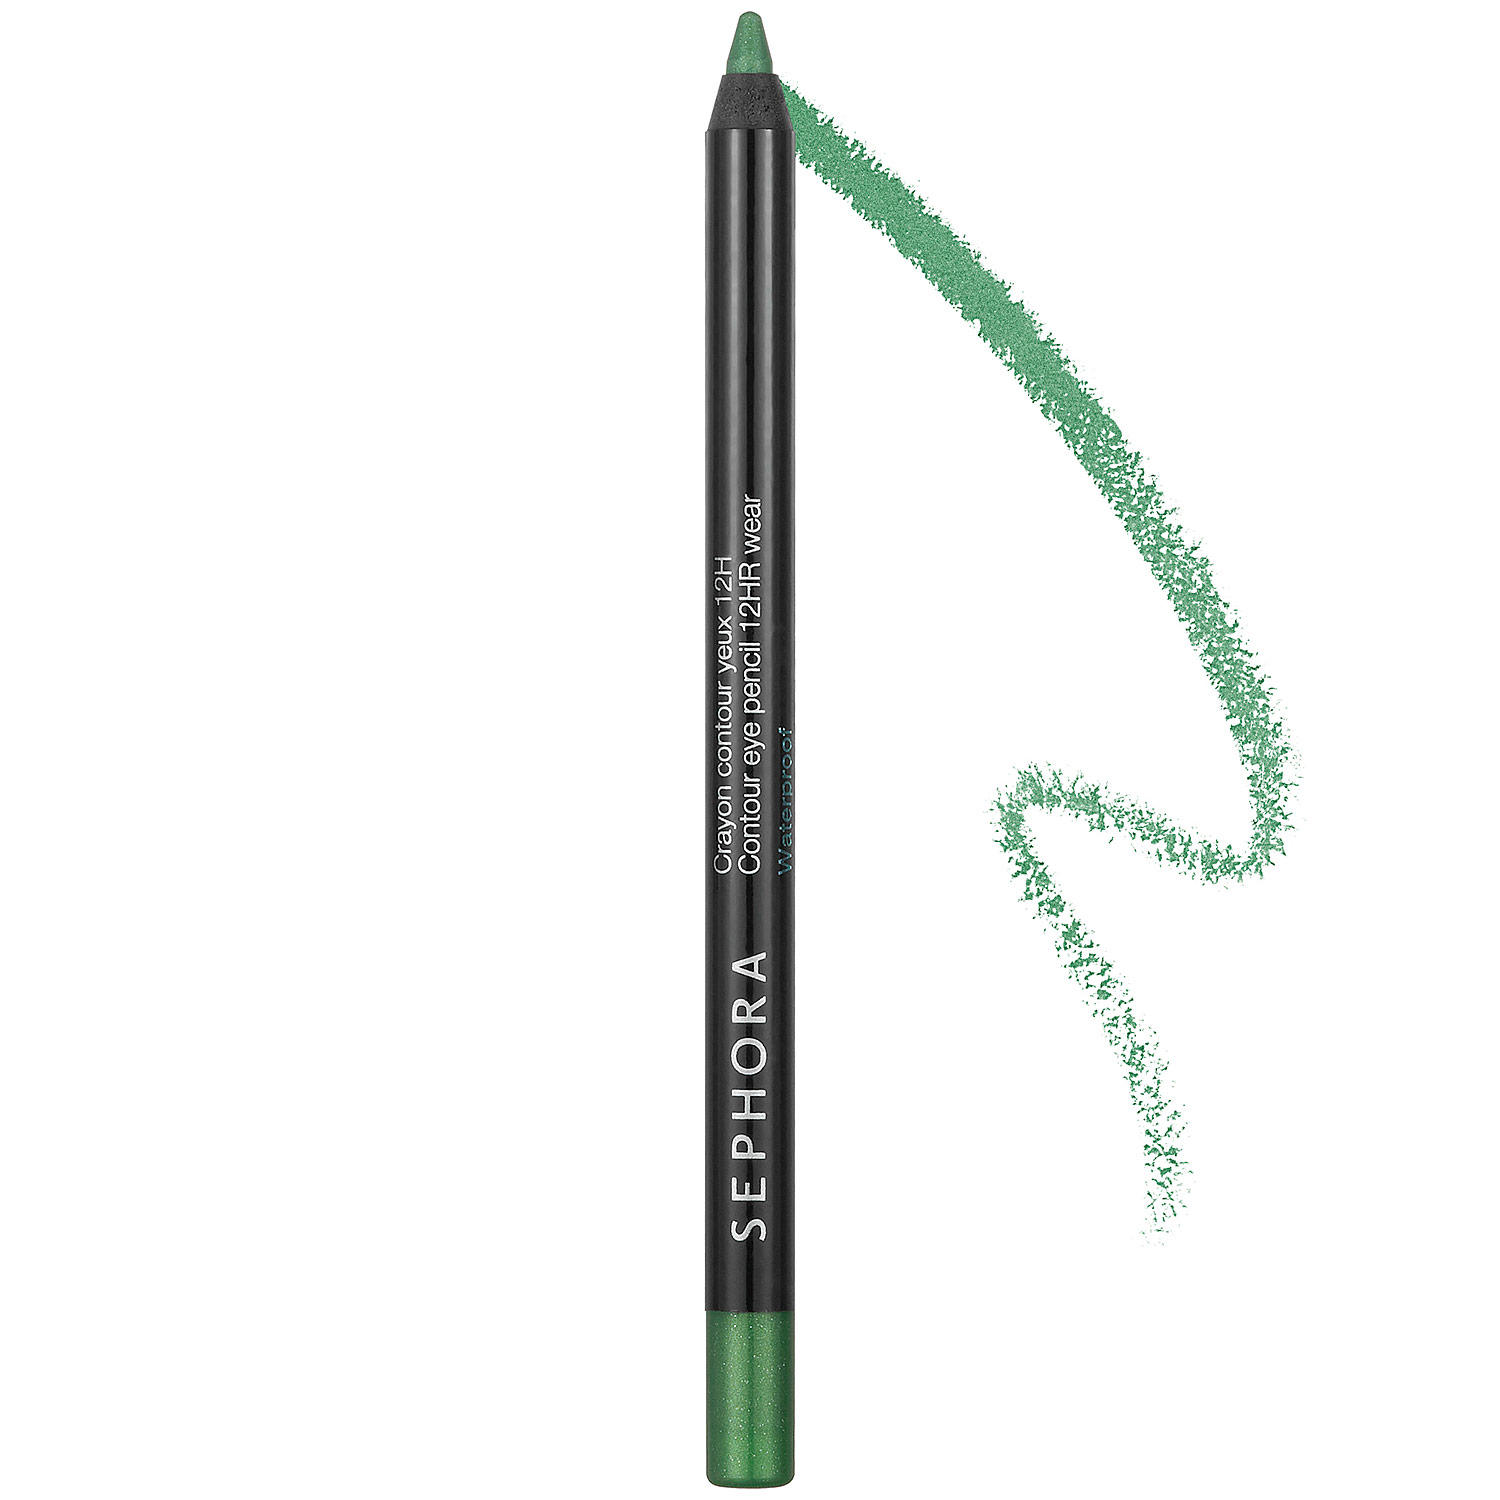 Sephora Contour Eye Pencil 12hr Wear Waterproof Indulge Yourself 22